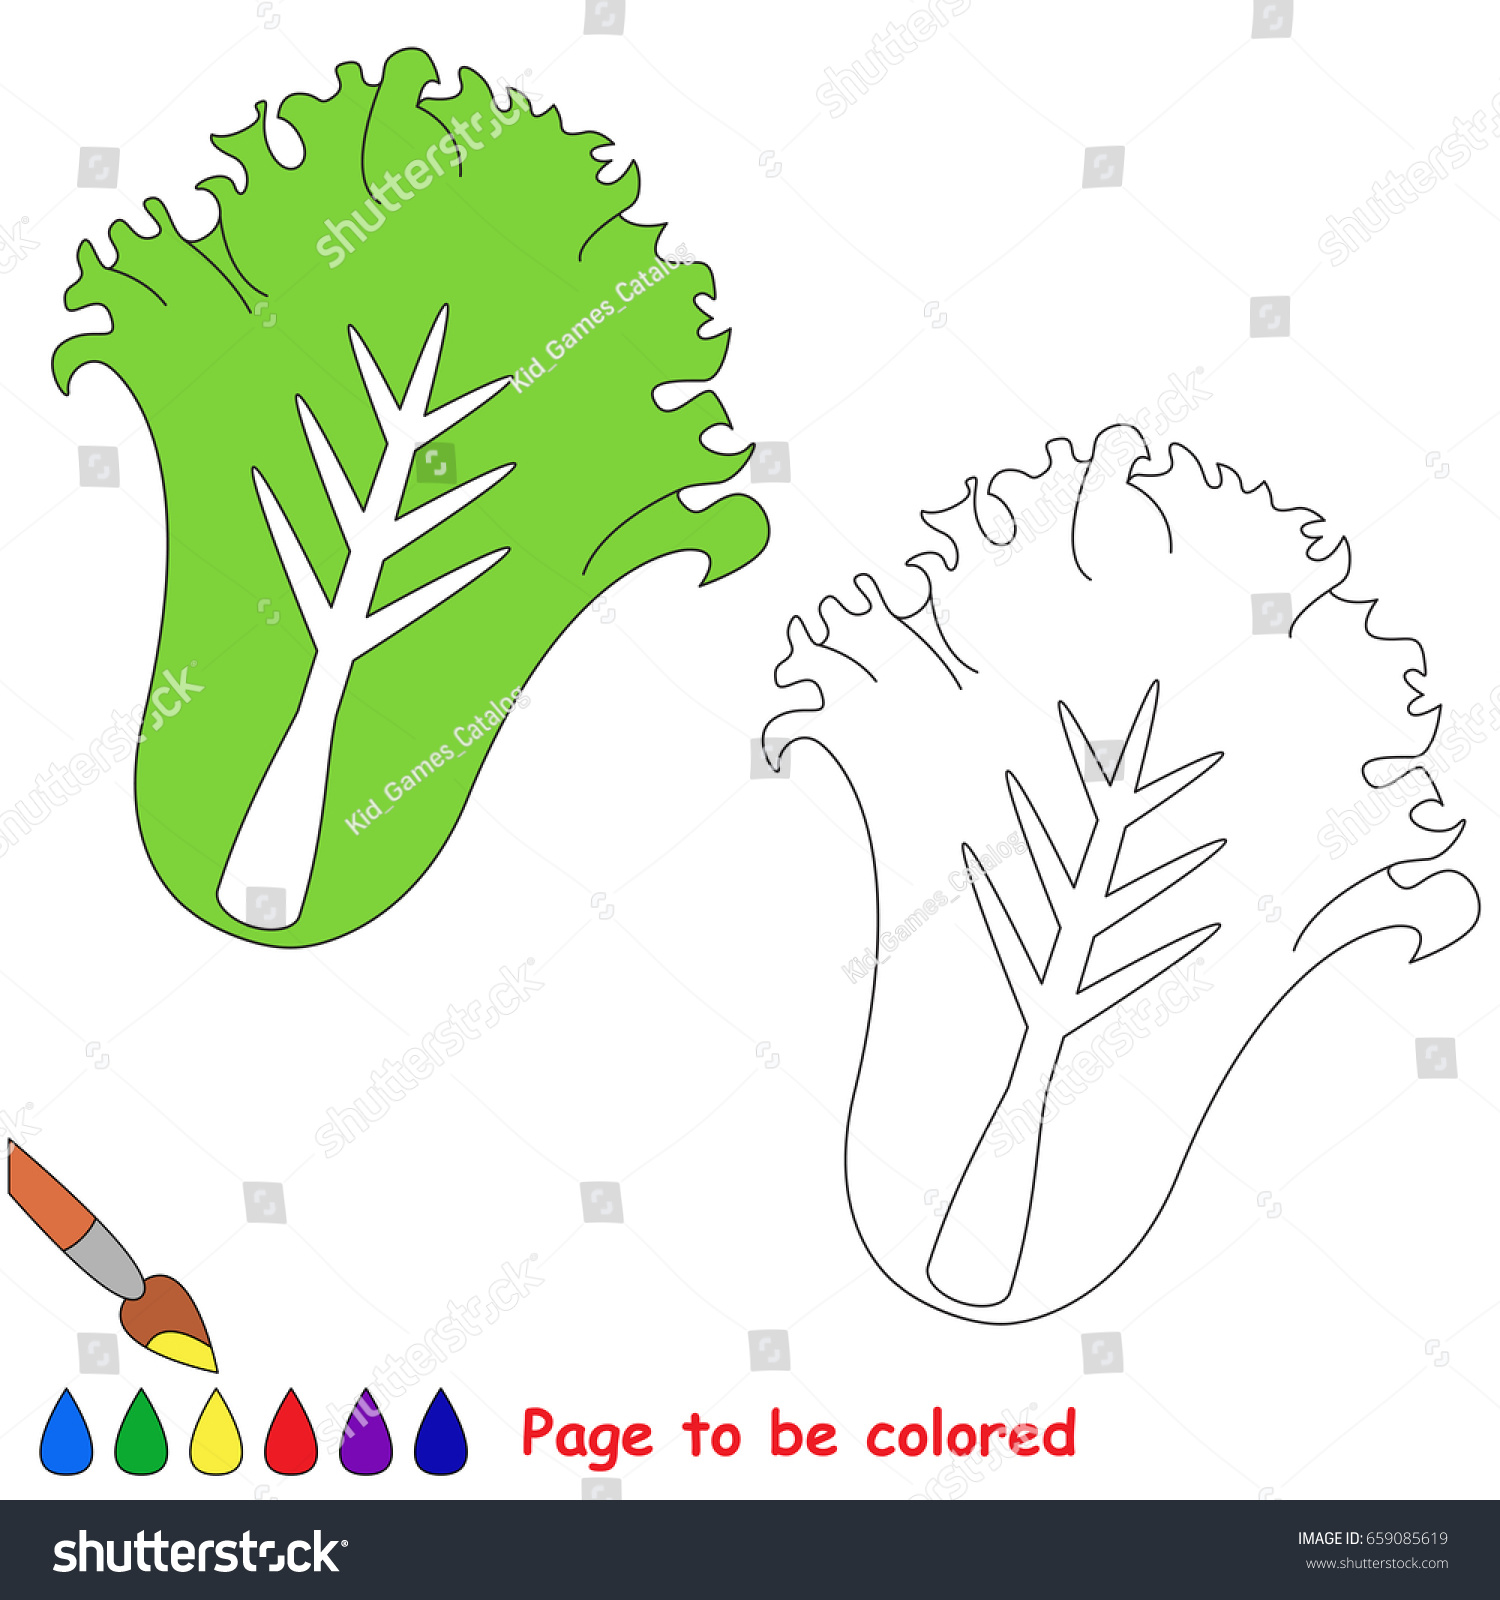 Green Lettuce Be Colored Coloring Book Stock Vector HD (Royalty Free ...